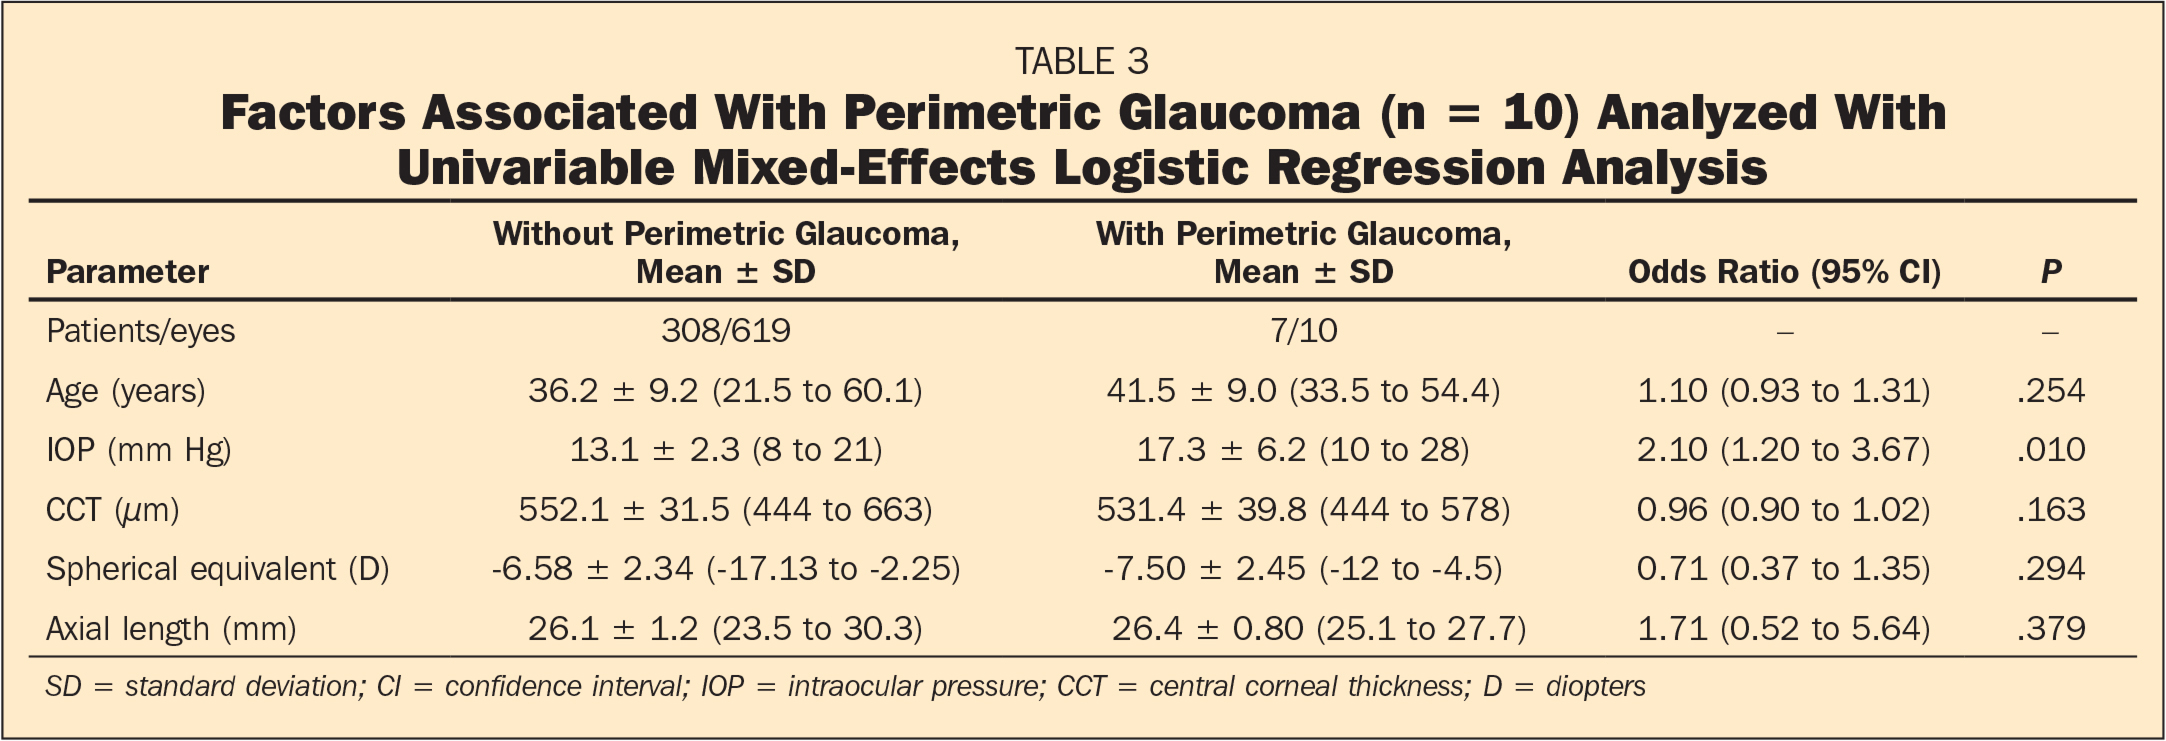 Factors Associated With Perimetric Glaucoma (n = 10) Analyzed With Univariable Mixed-Effects Logistic Regression Analysis